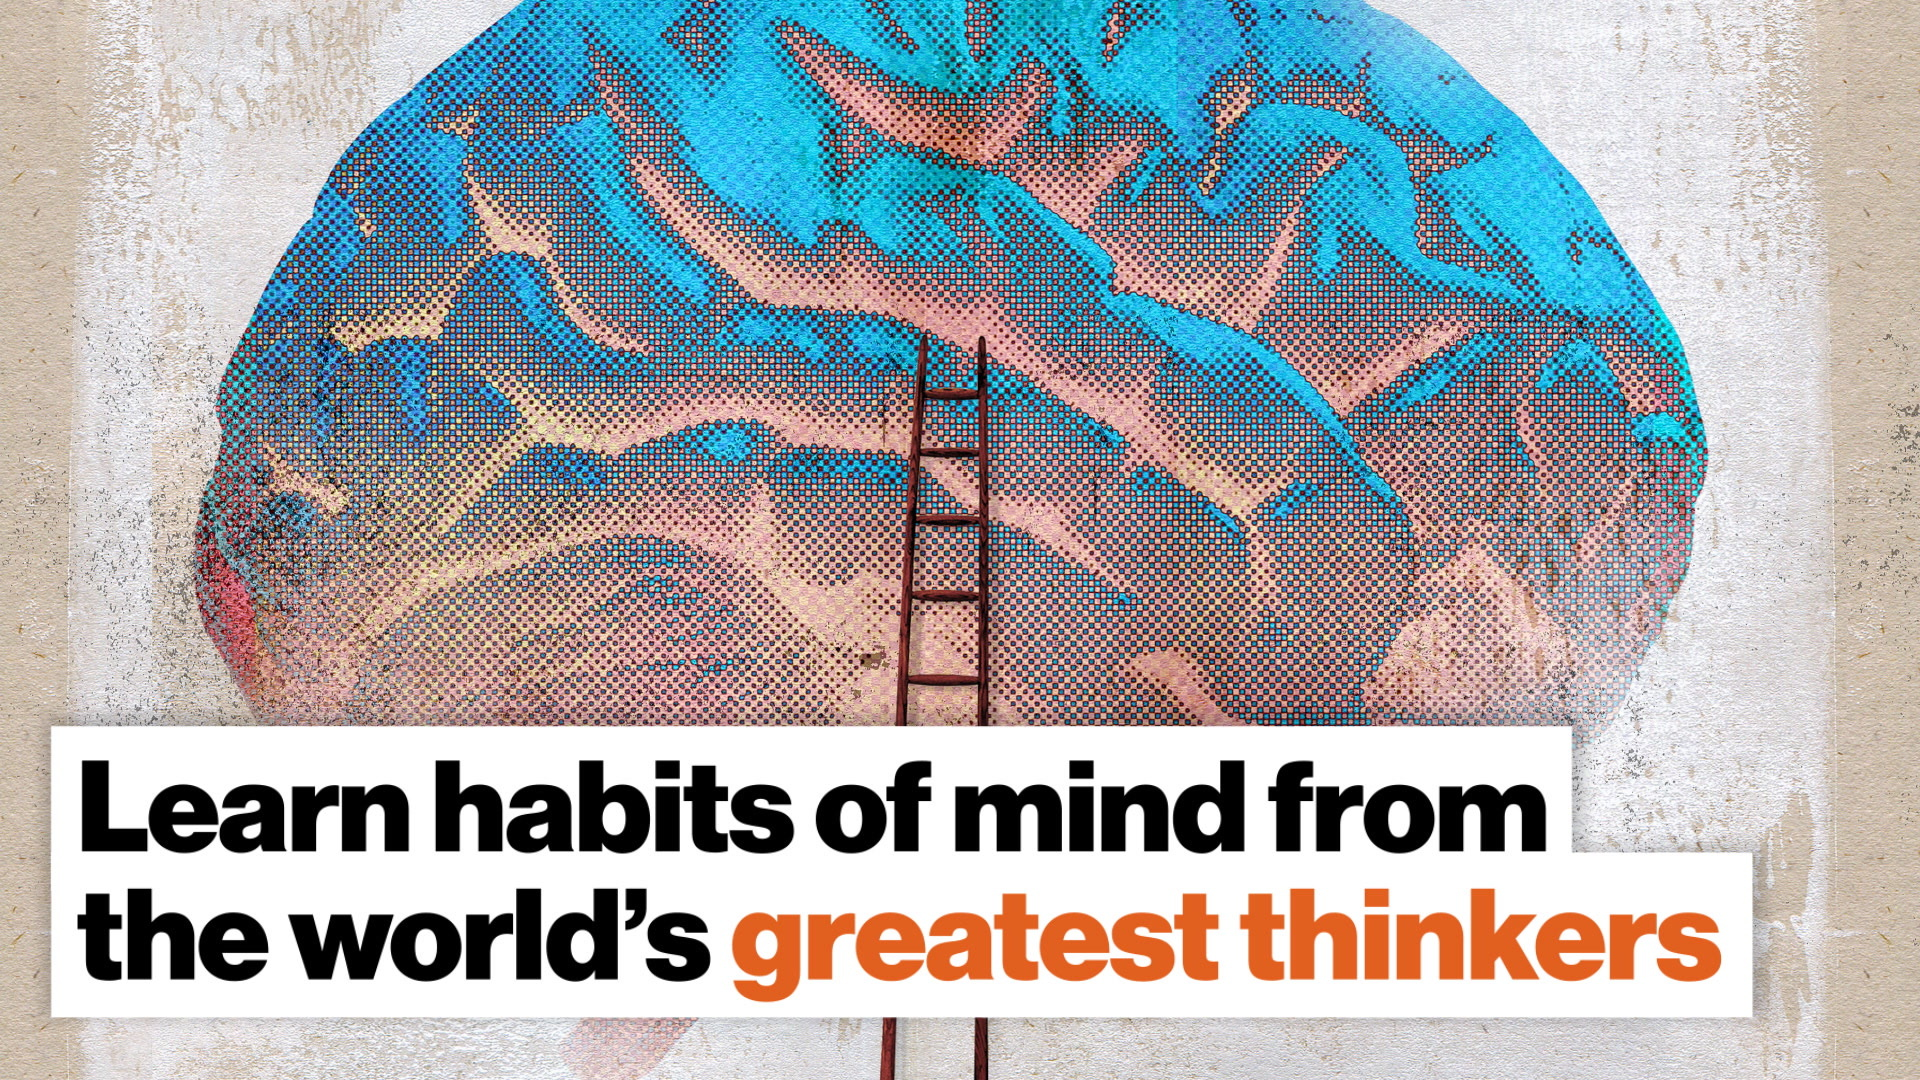 Big Think is evolving. Learn habits of mind from the world's greatest thinkers.